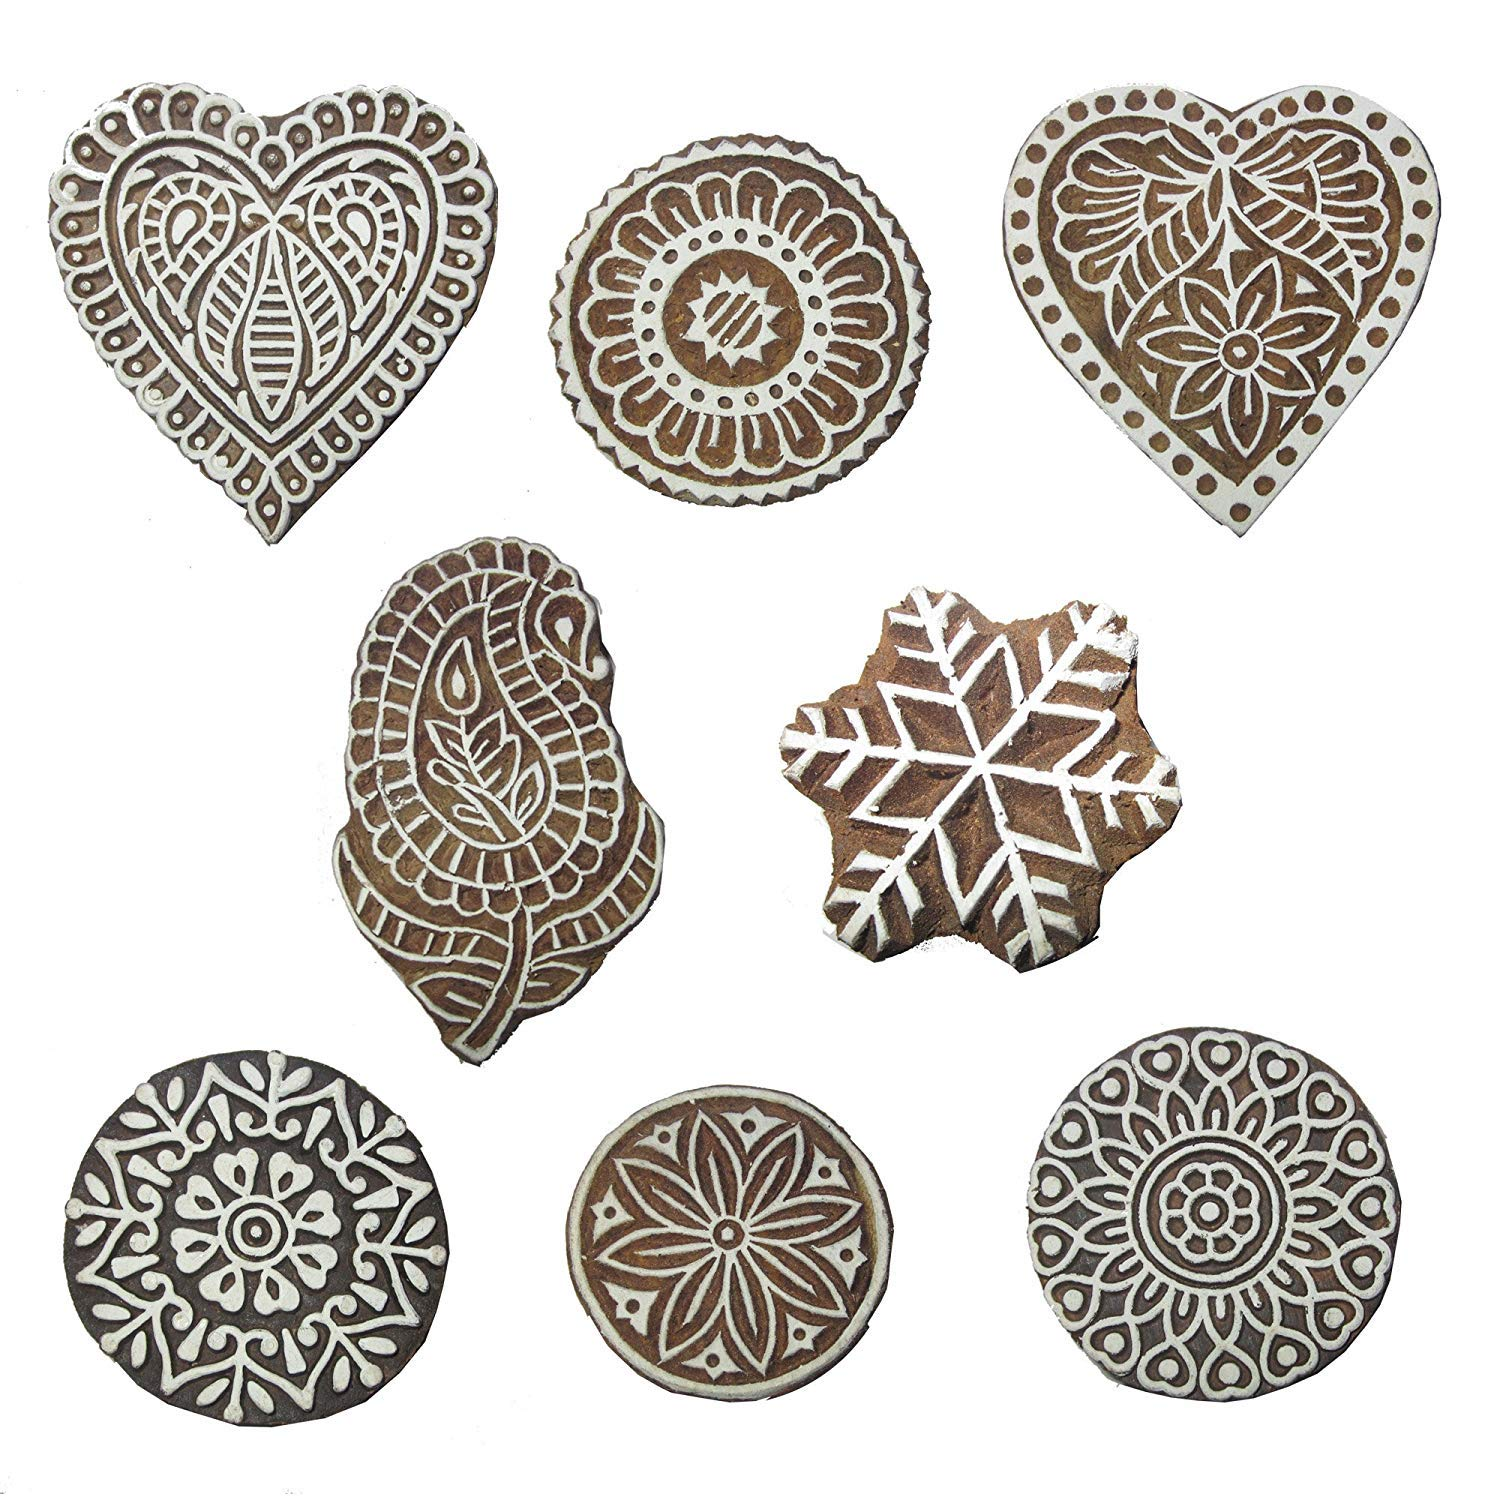 PARIJAT HANDICRAFT Printing Stamps Mughal Design Wooden Blocks (Set of 8) Hand-Carved for Saree Border Making Pottery Crafts Textile Printing